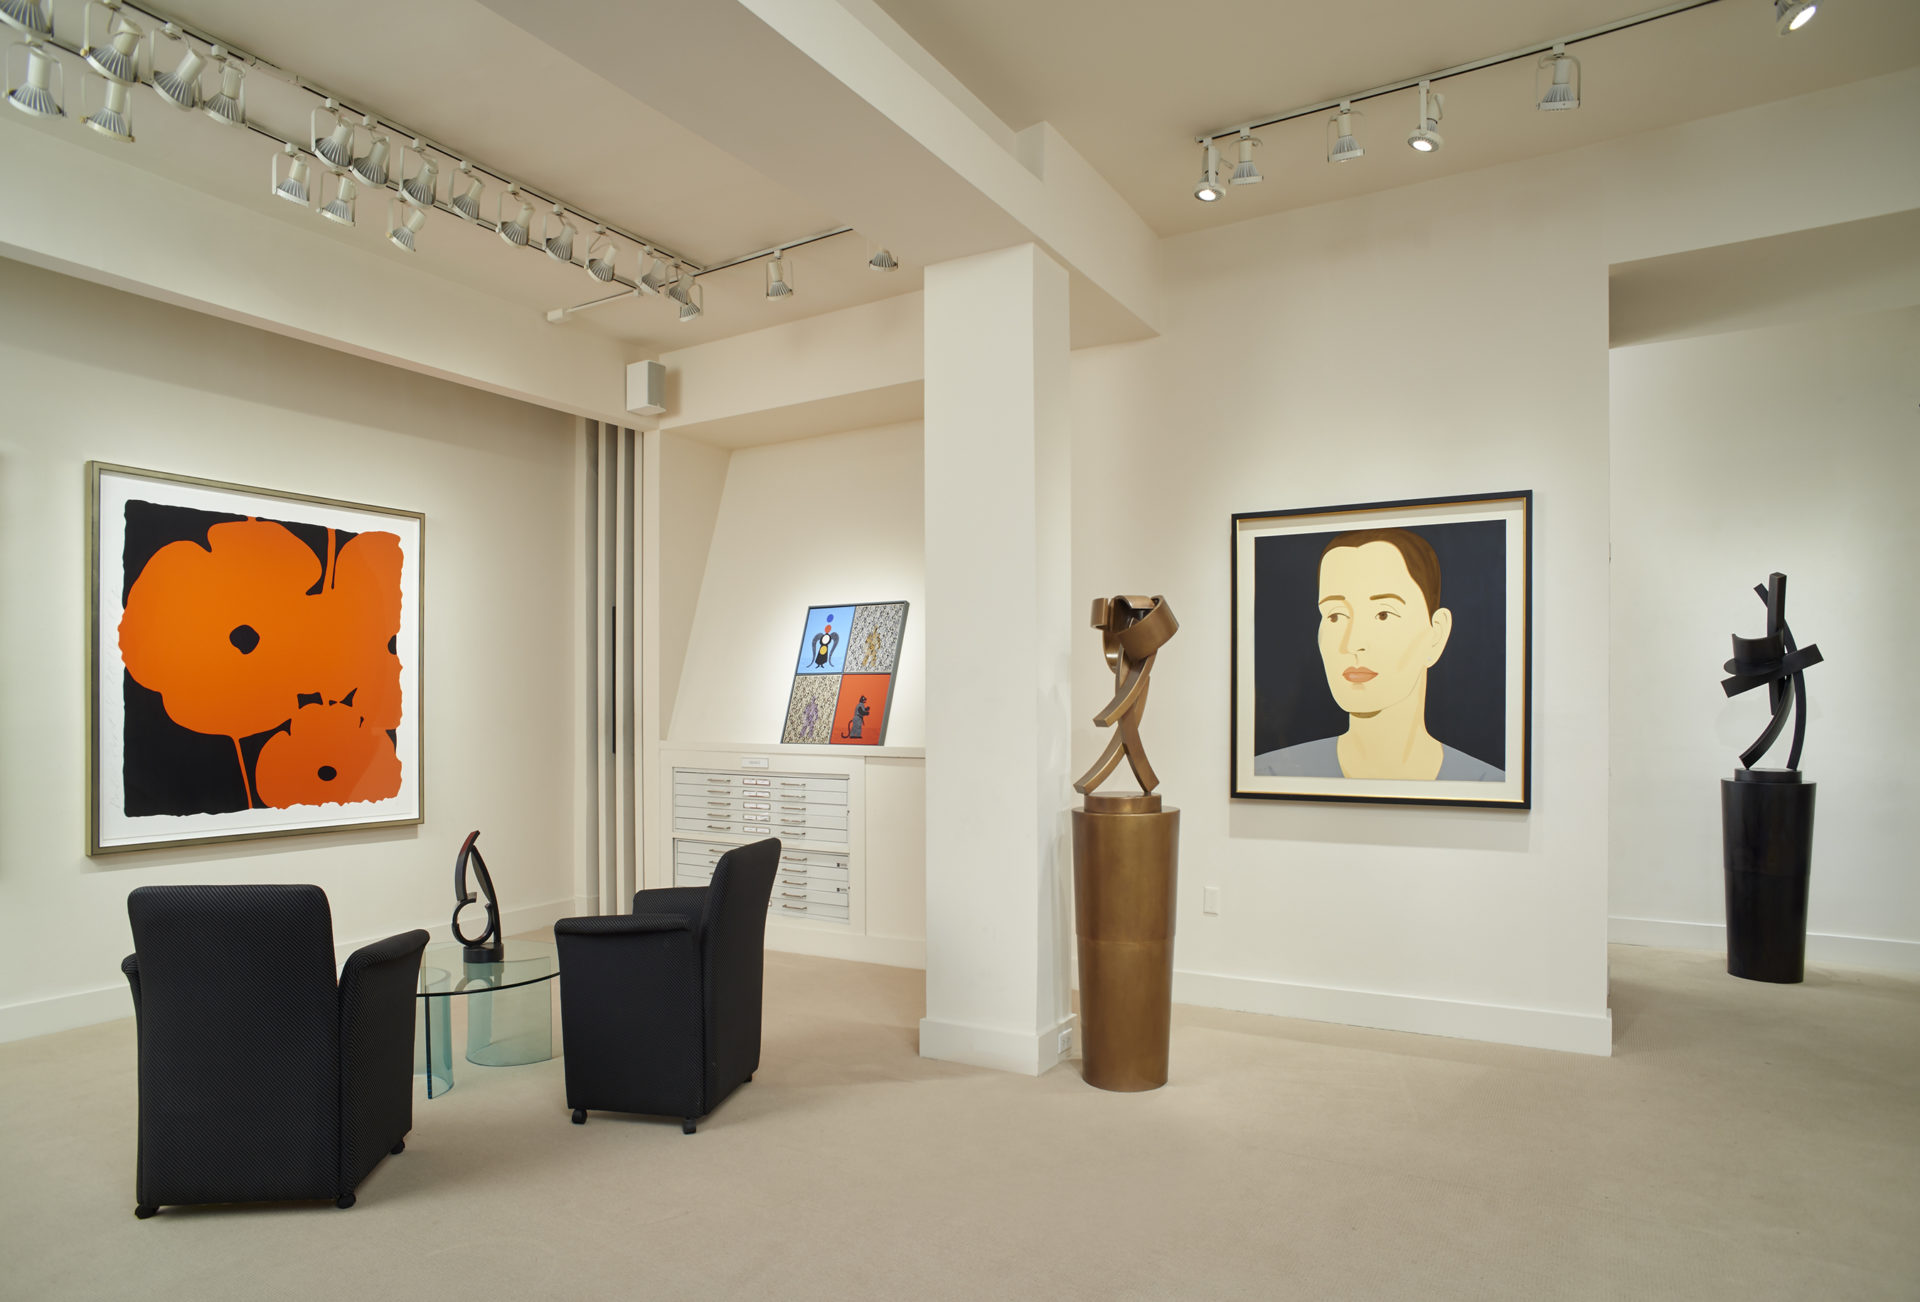 Installation at Meyerovich Gallery with Donald Sultan, Grisha Bruskin, Guy Dill and Alex Katz